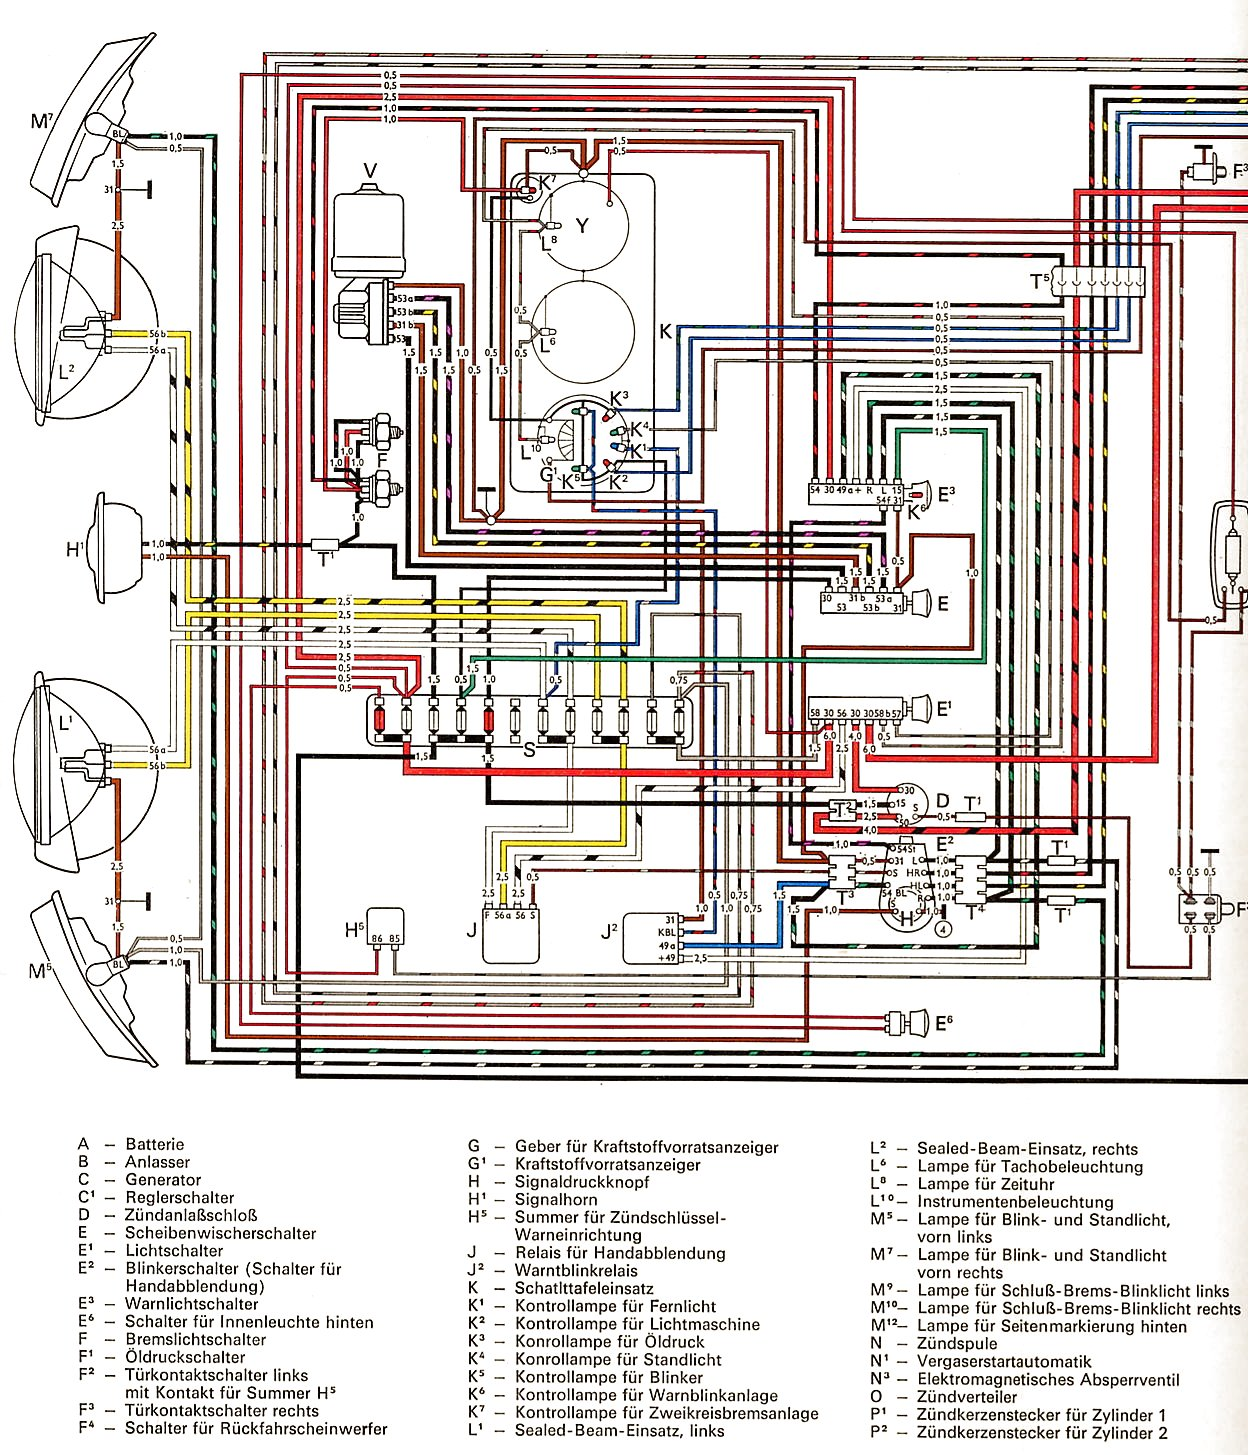 Mexican Vw Beetle Wiring Diagram Great Installation Of 1965 Thegoldenbugcom Vintagebus Com Bus And Other Diagrams Rh